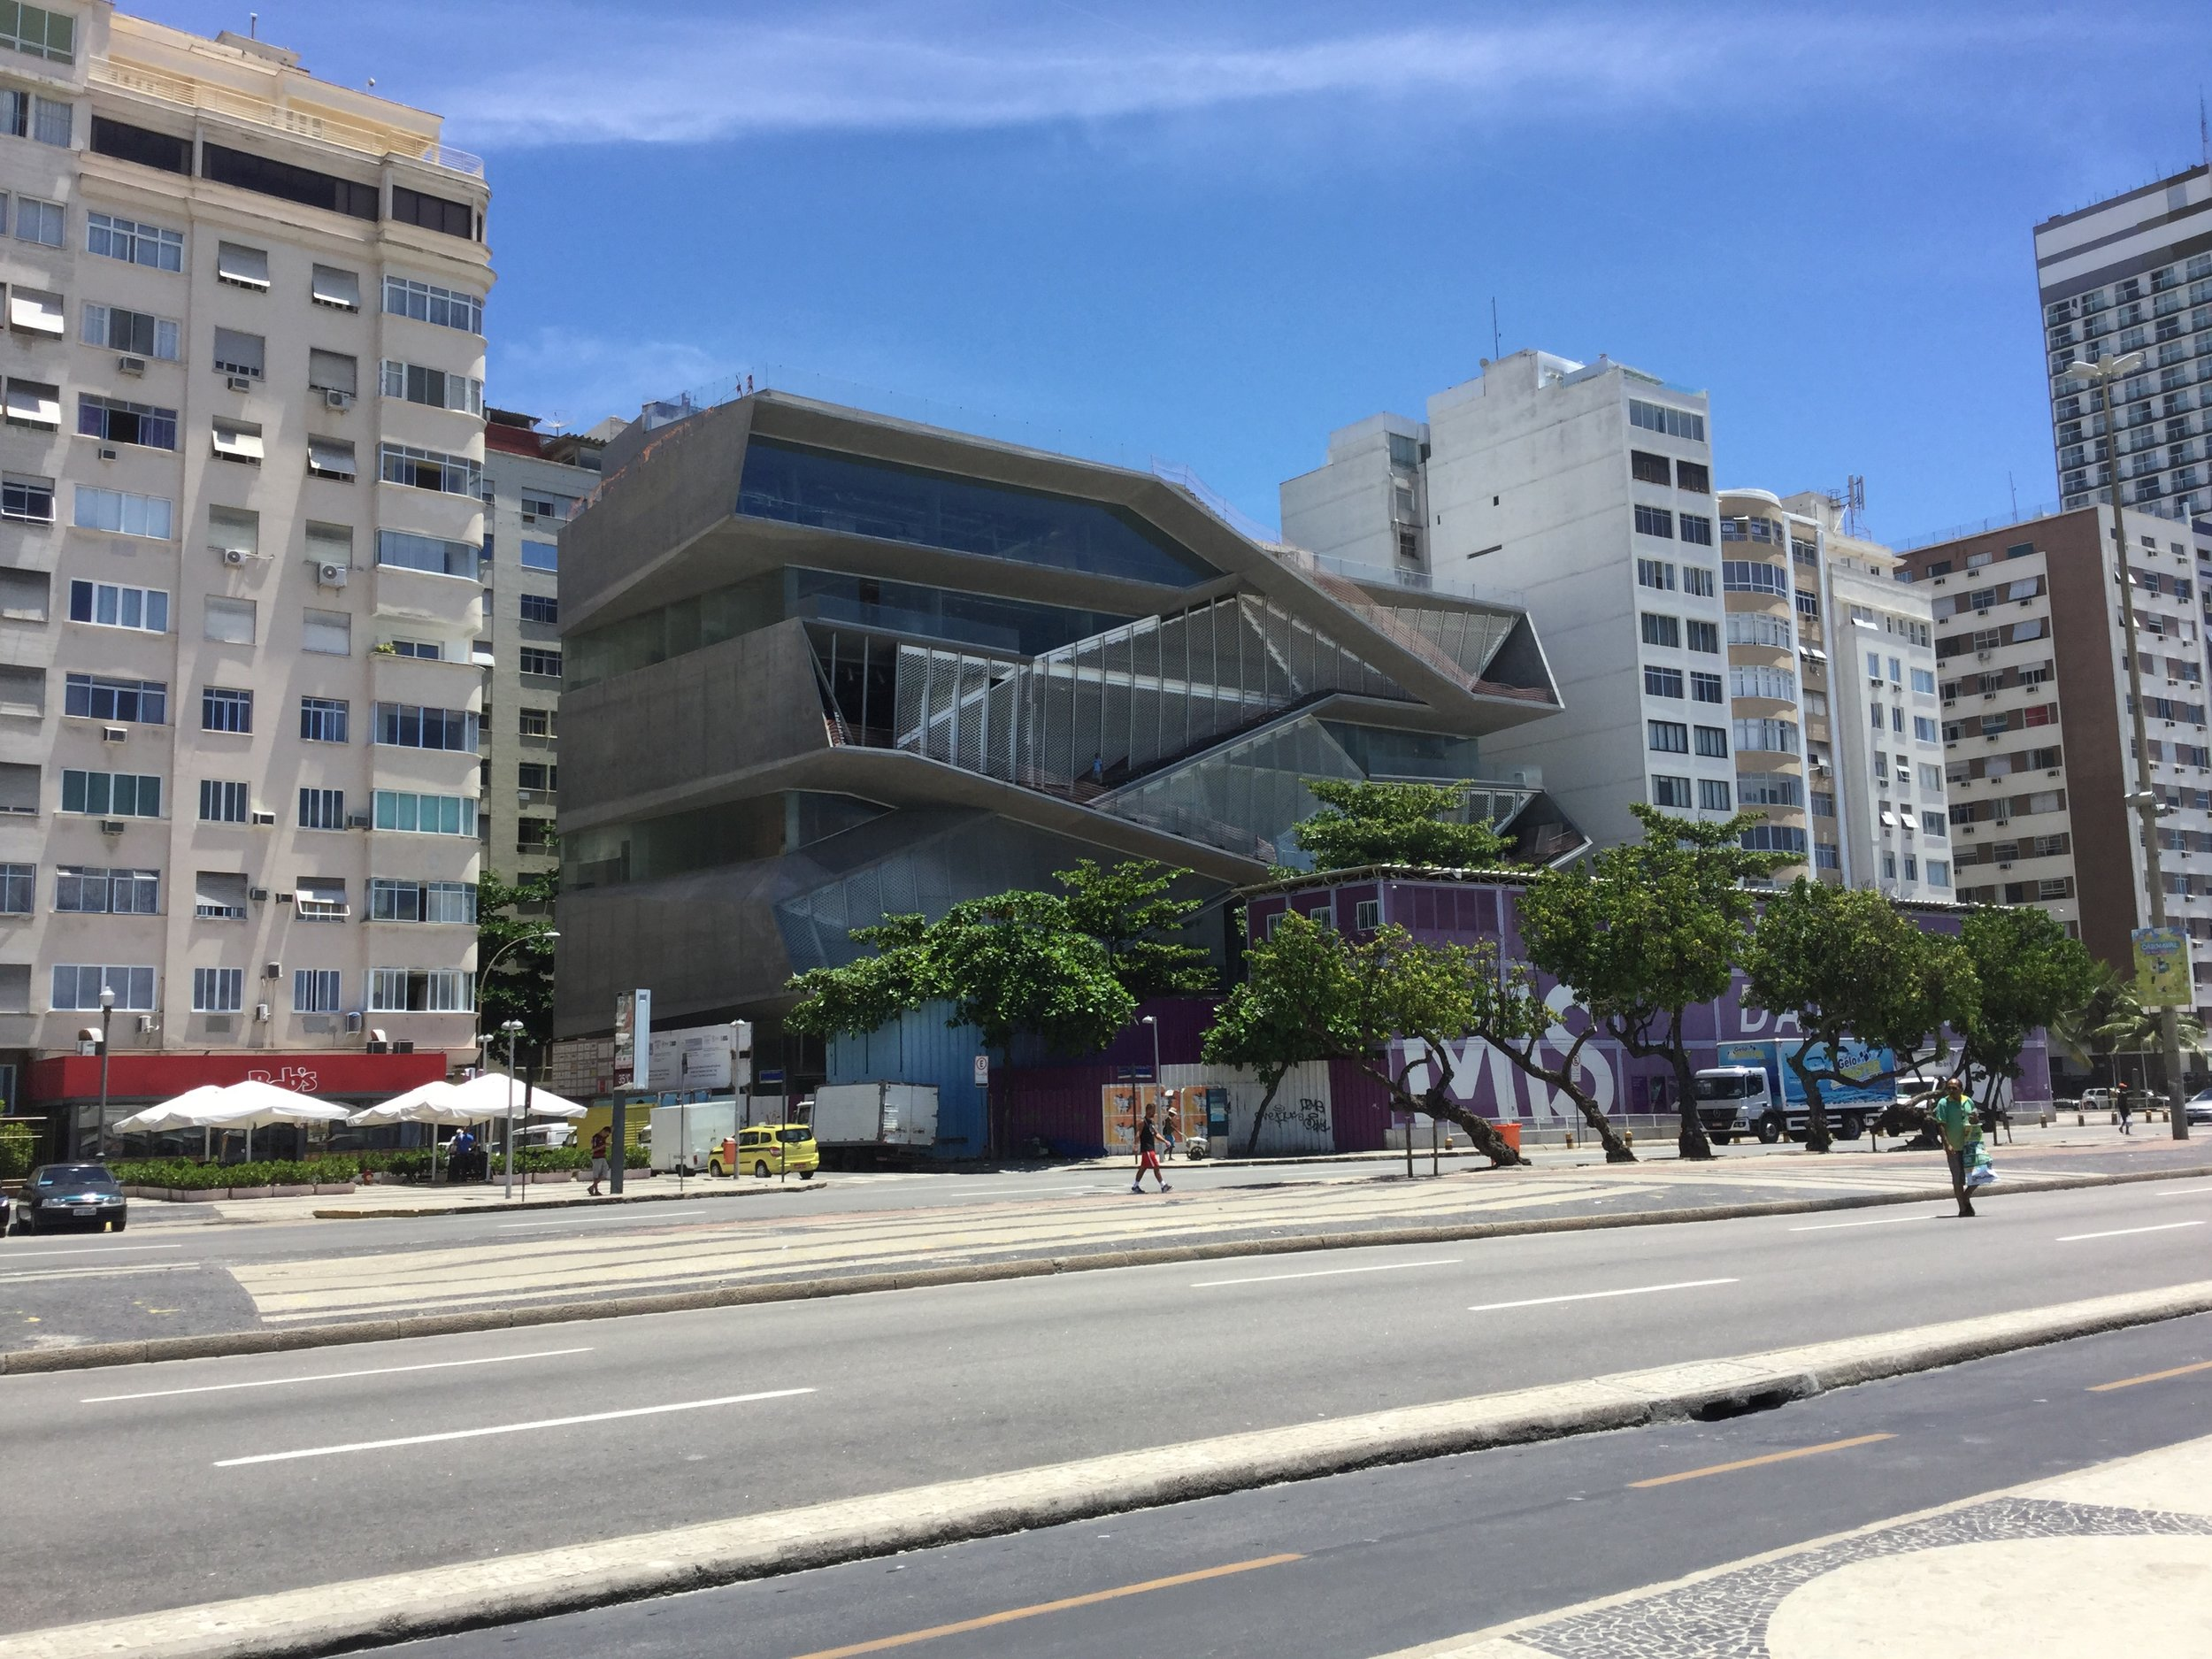 This is the Rio Museum of Image and Sound, also called the Carmen Miranda Museum. Or more accurately, this is their new building, under construction. The opening is scheduled for April or September 2016 (oops, isn't that past already??) haha. The architects are Diller & Scofidio from New York.